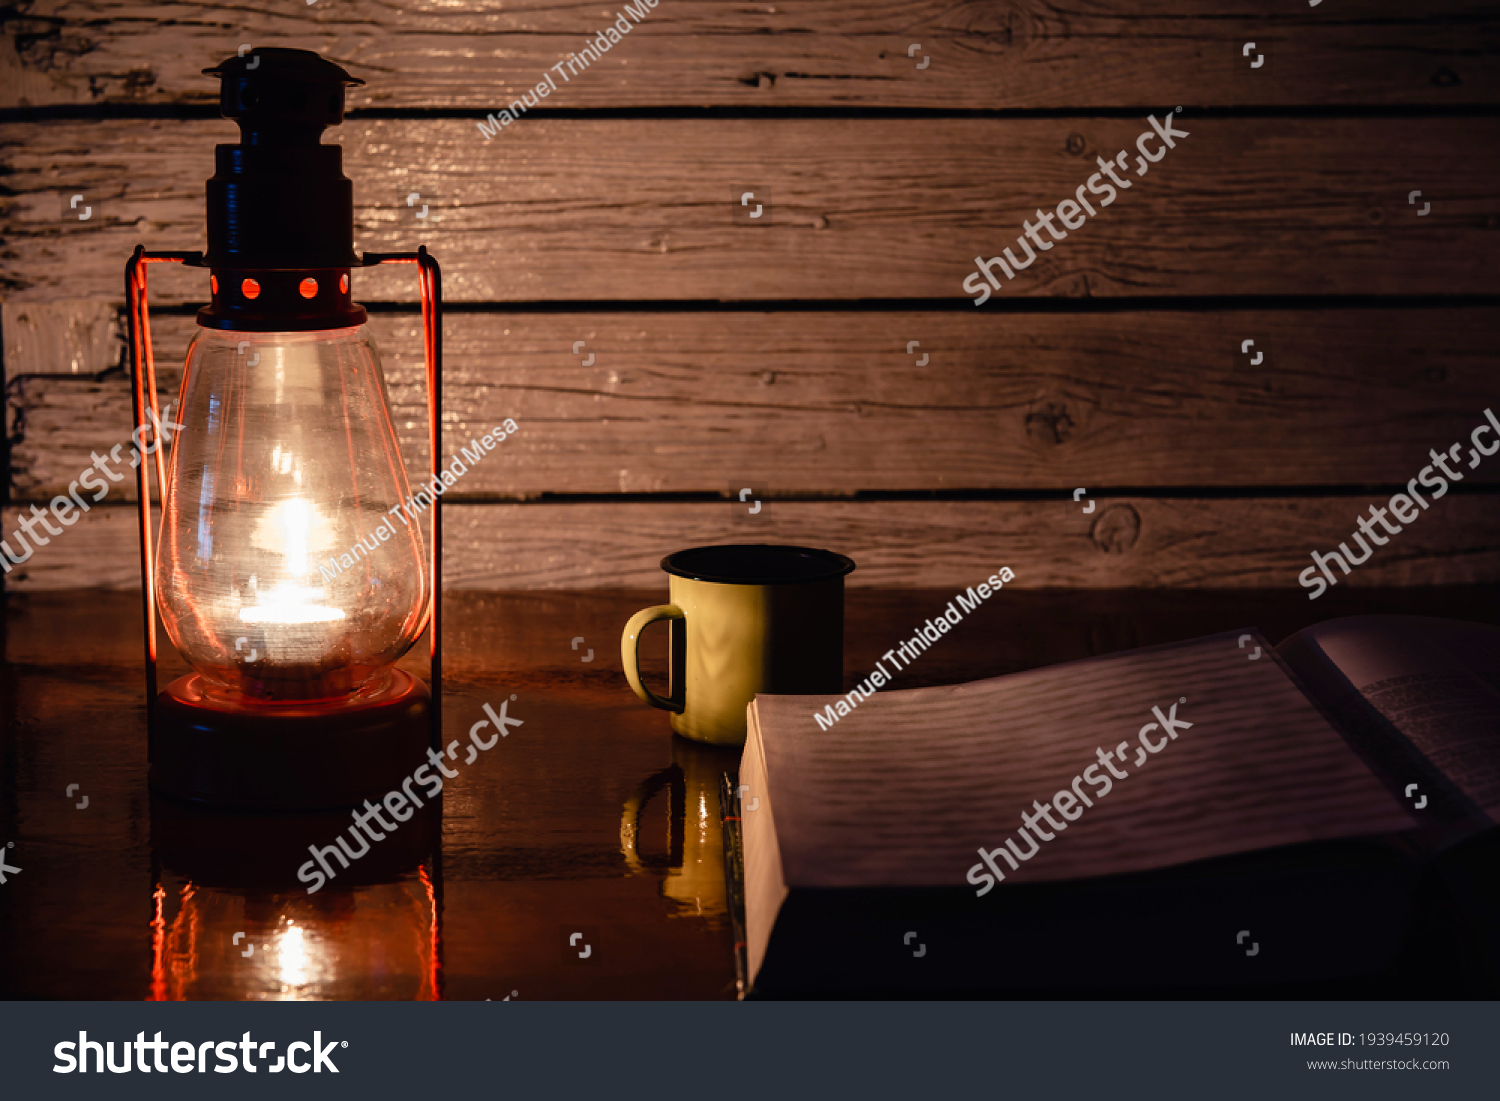 An open book and a cup of coffee in the light of a chandelier at night.